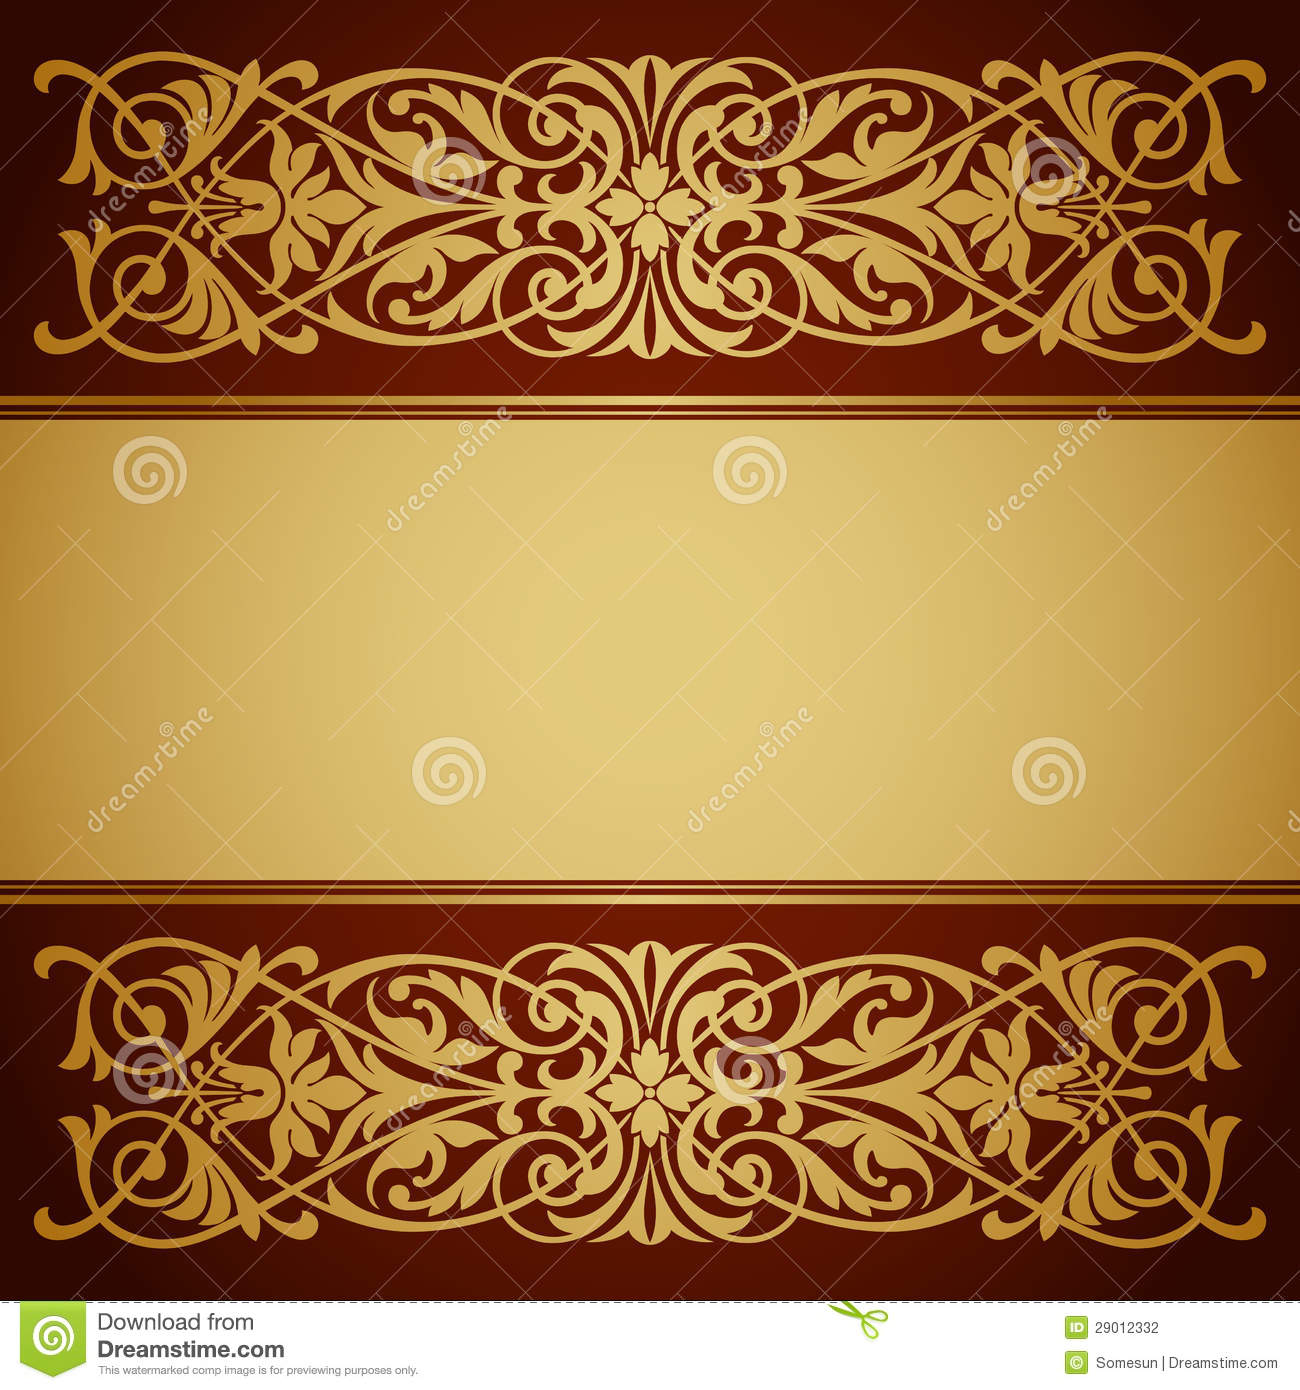 Stock Photography Vintage Border Frame Gold Background Calligraphy Vector Image29012332 on Swirl Border Pattern